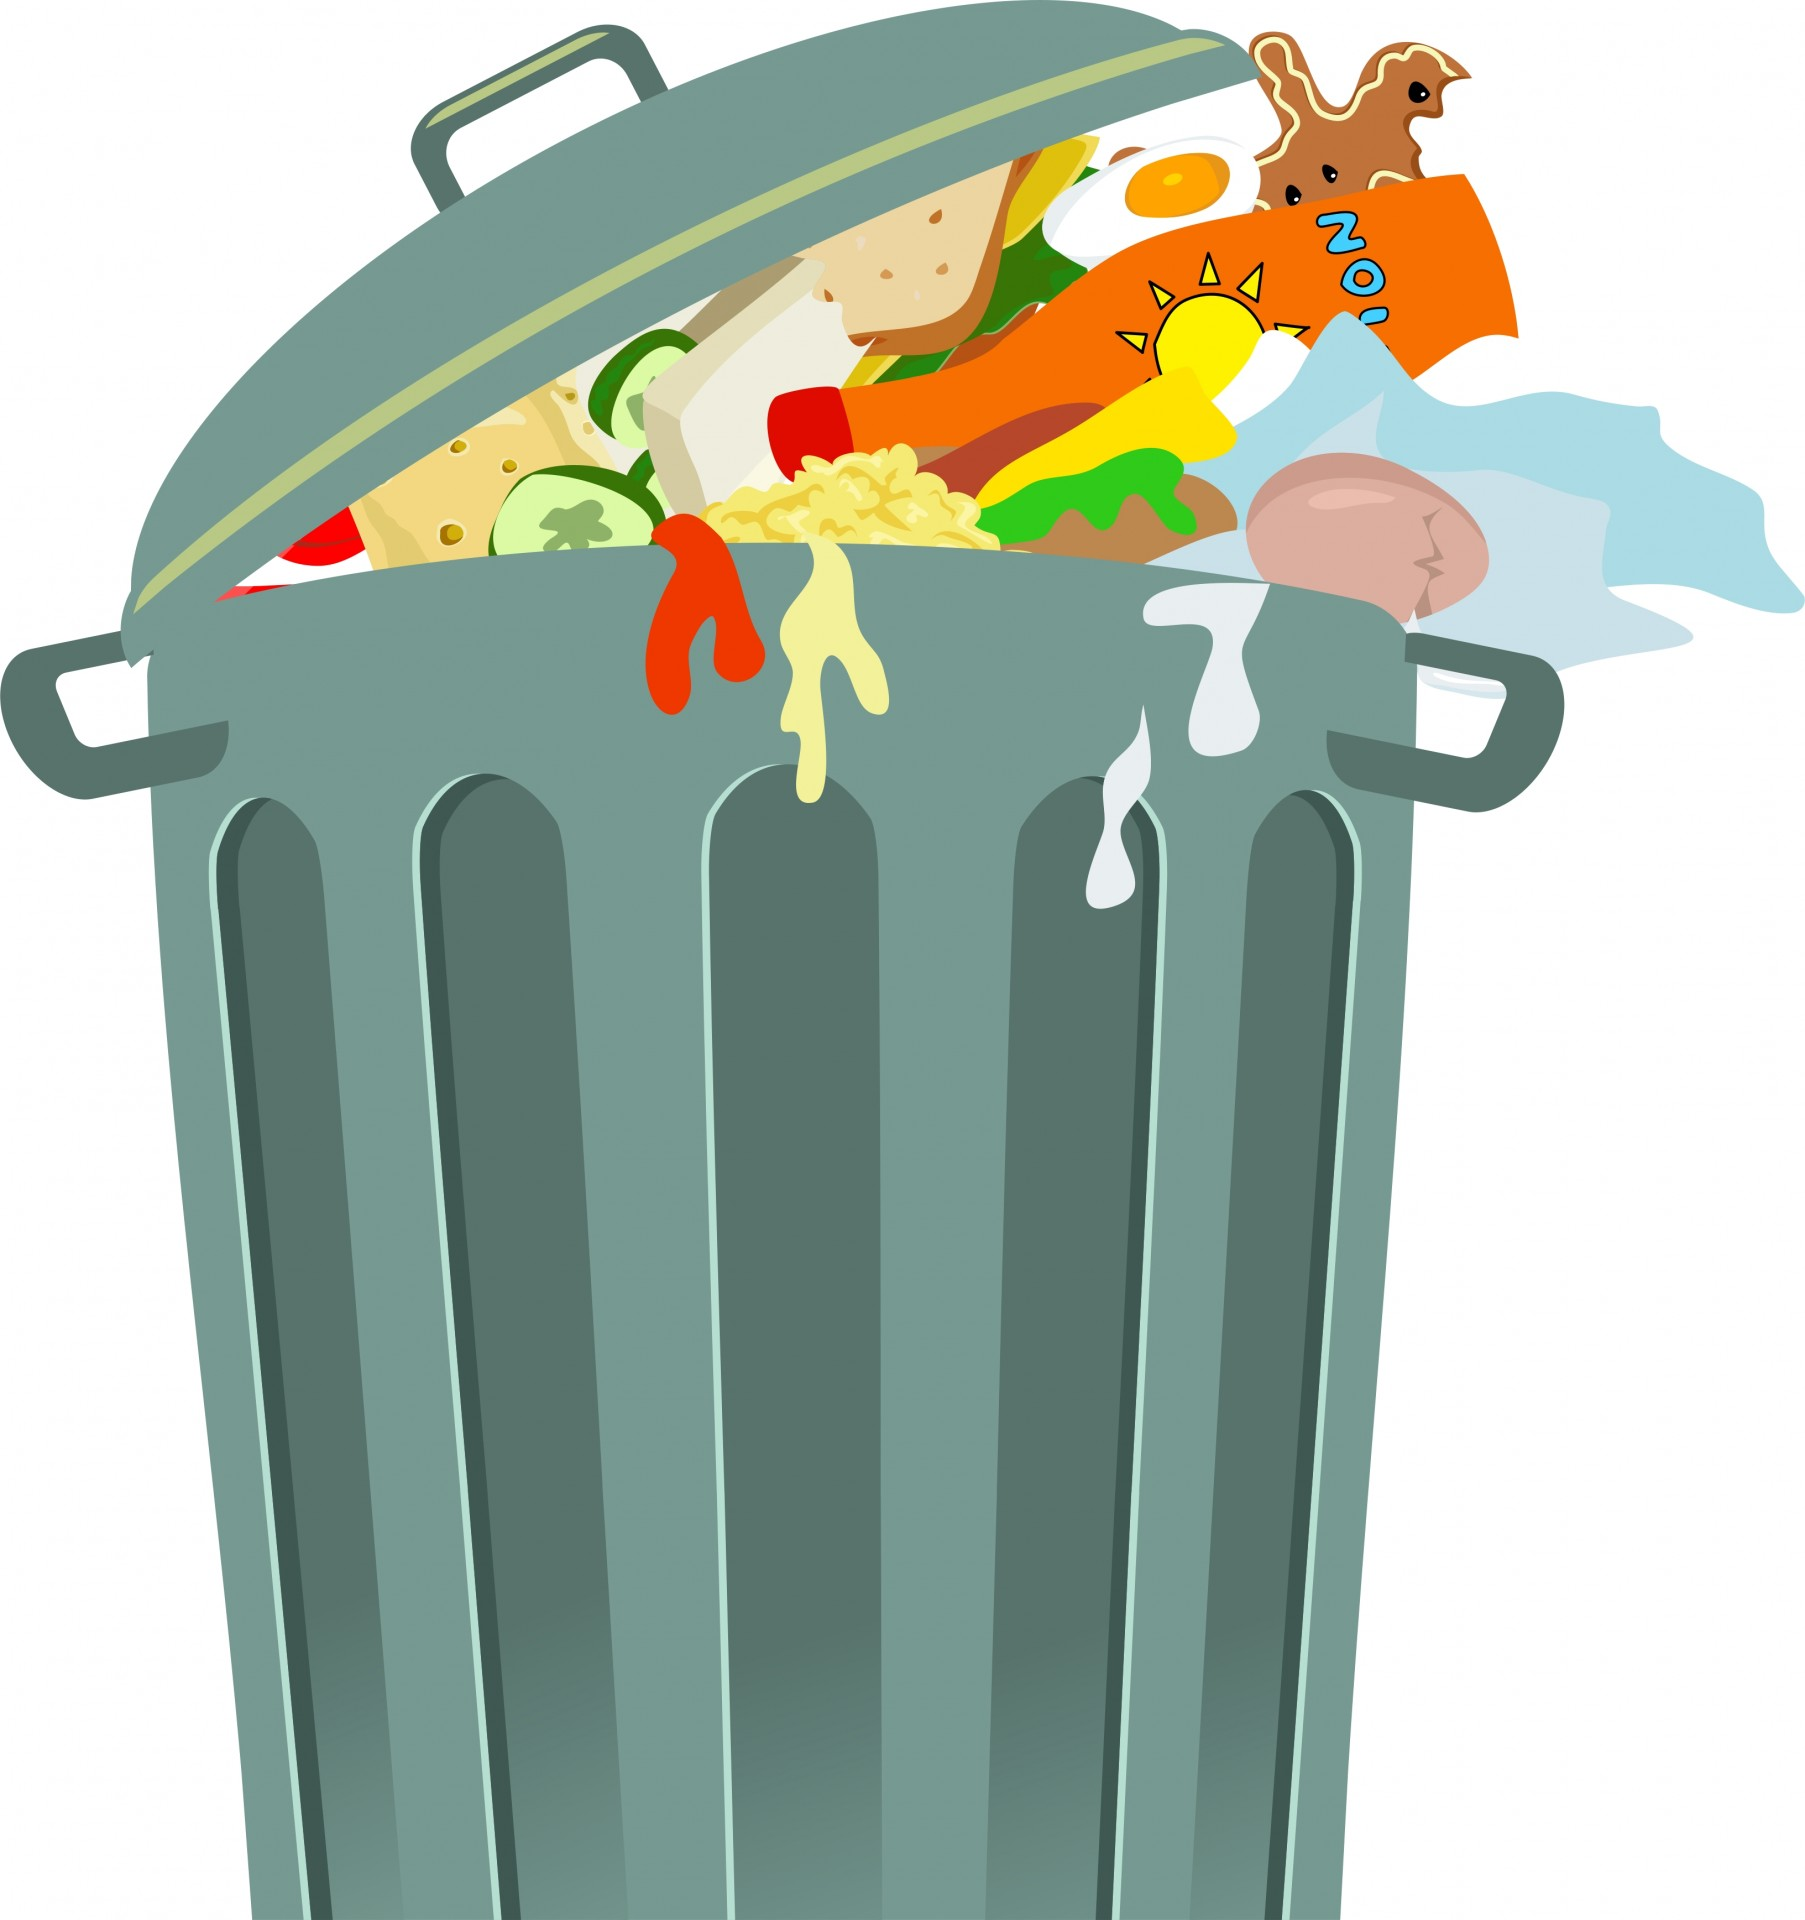 Trash can clip art. Public clipart in charge clip download